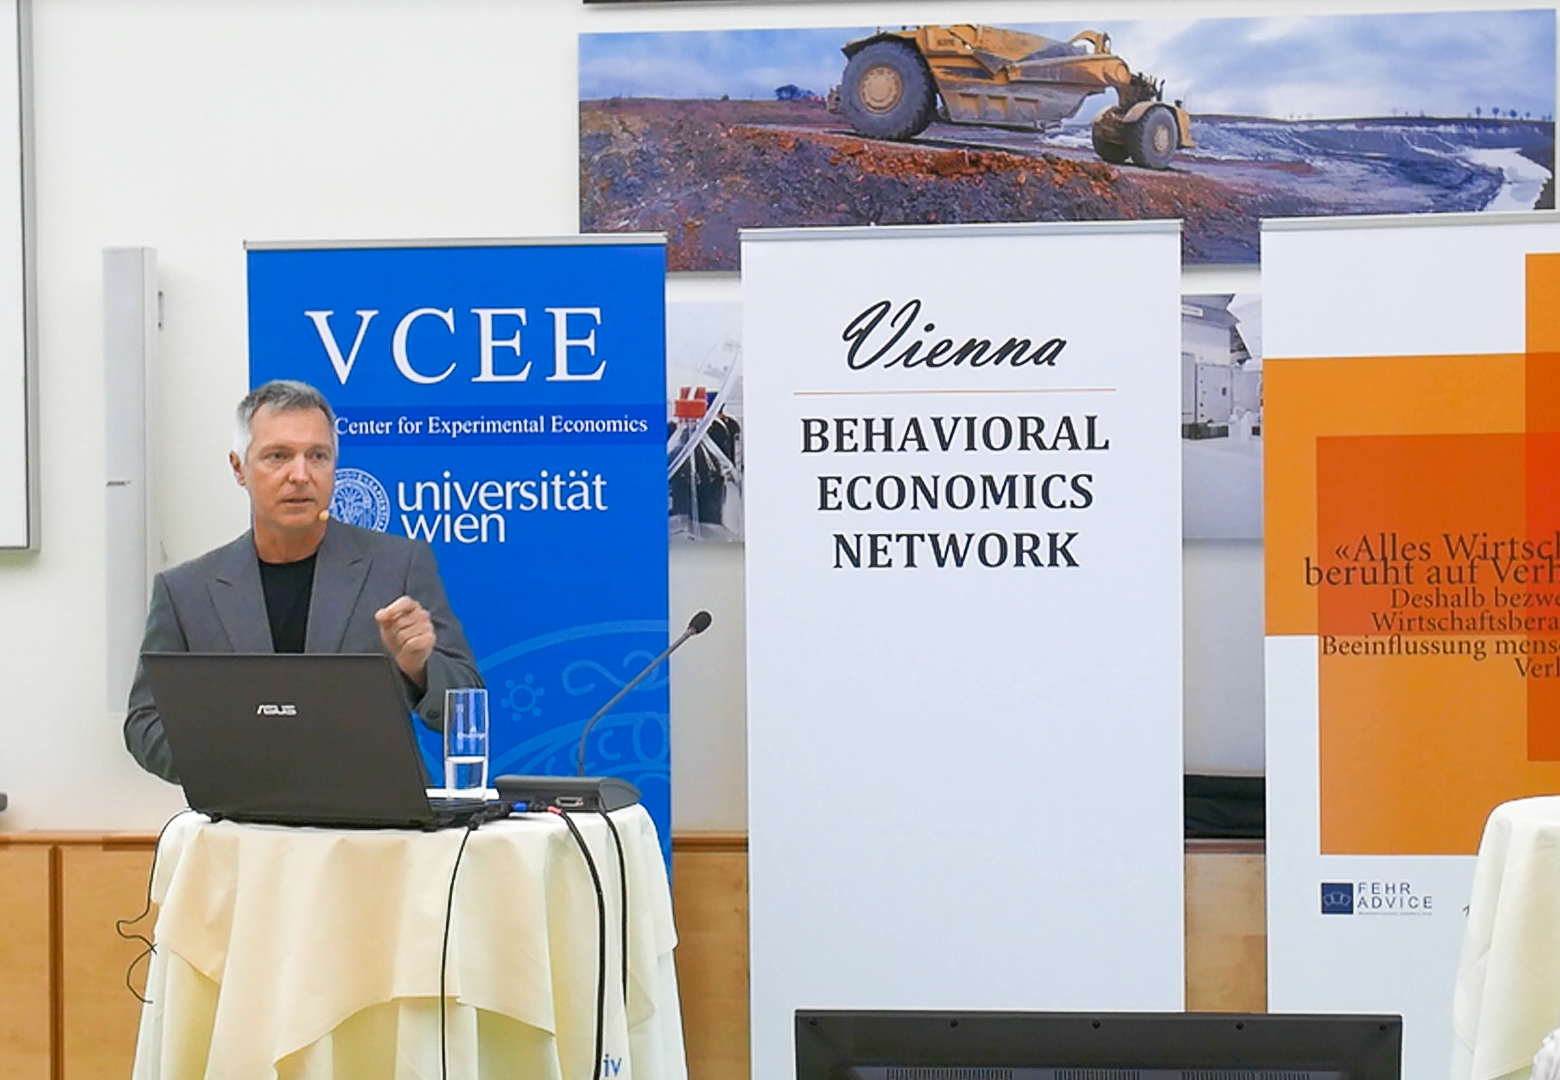 Vienna Behavioral Economics Network mit John A. List, 07.09.16. Foto: ©Thomas Suchanek